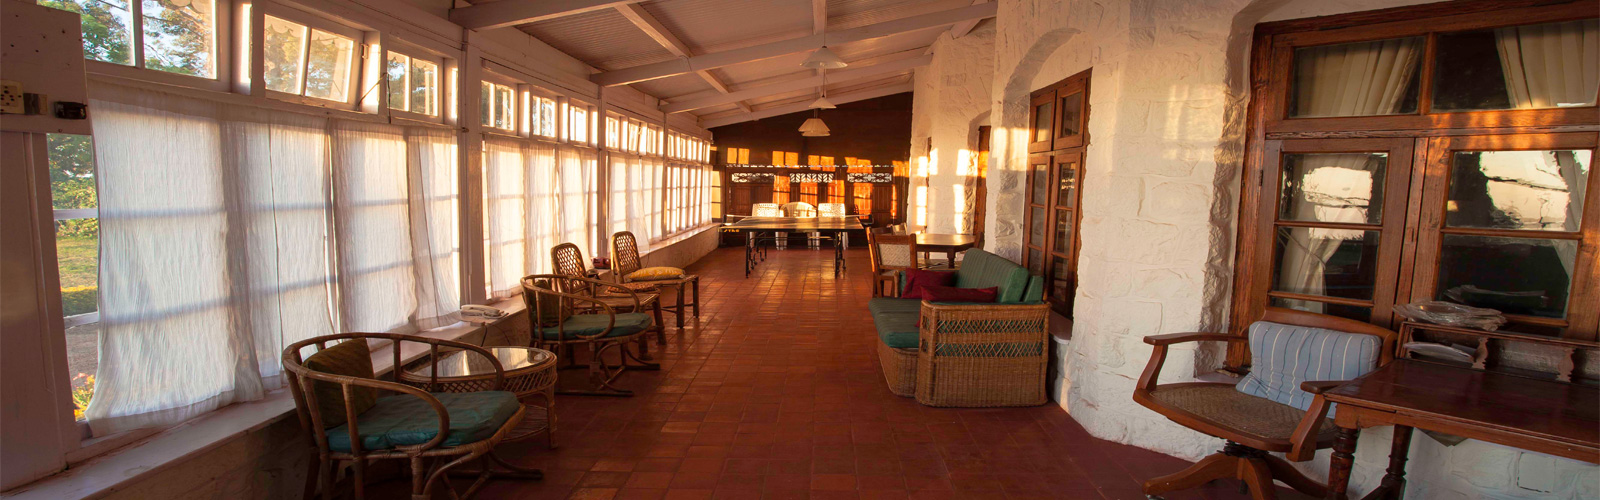 Kodaikanal Home Stay Verandah